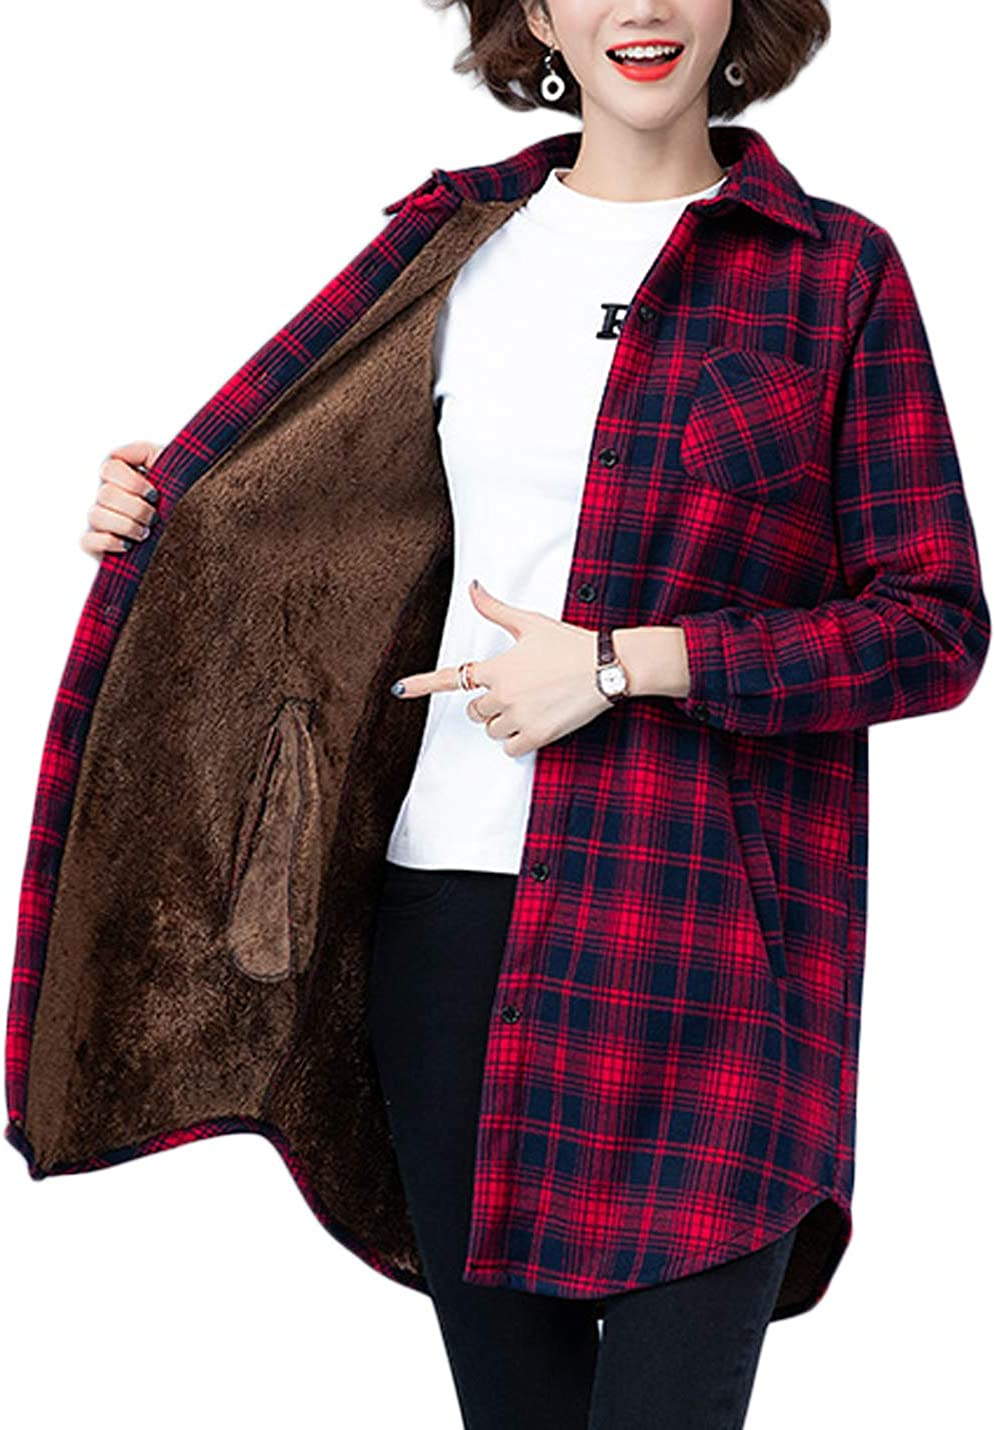 Jenkoon Women's Mid-Long Casual Plaid Check Thermal Lined Flannel Fuzzy Shirt Jacket